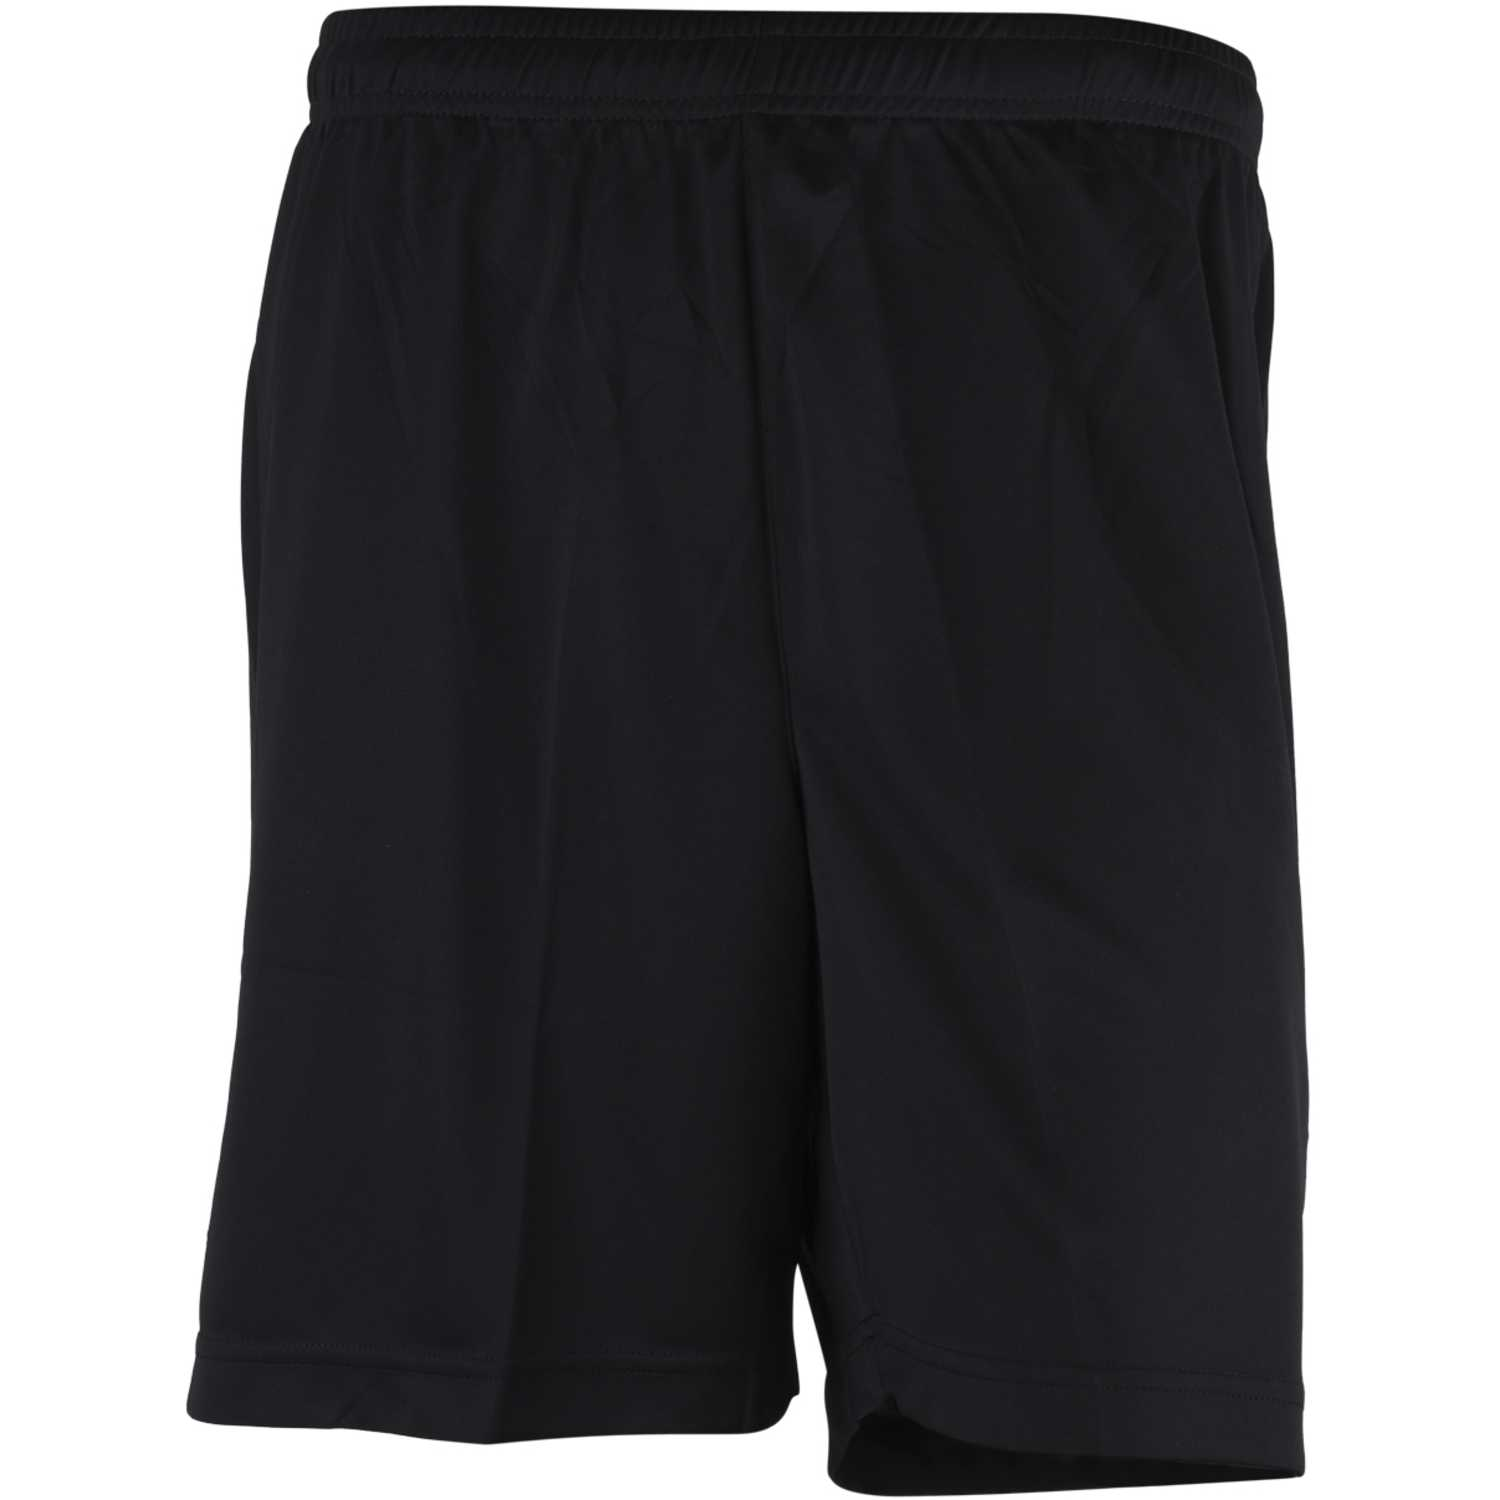 Short de Hombre Lotto Negro short speed